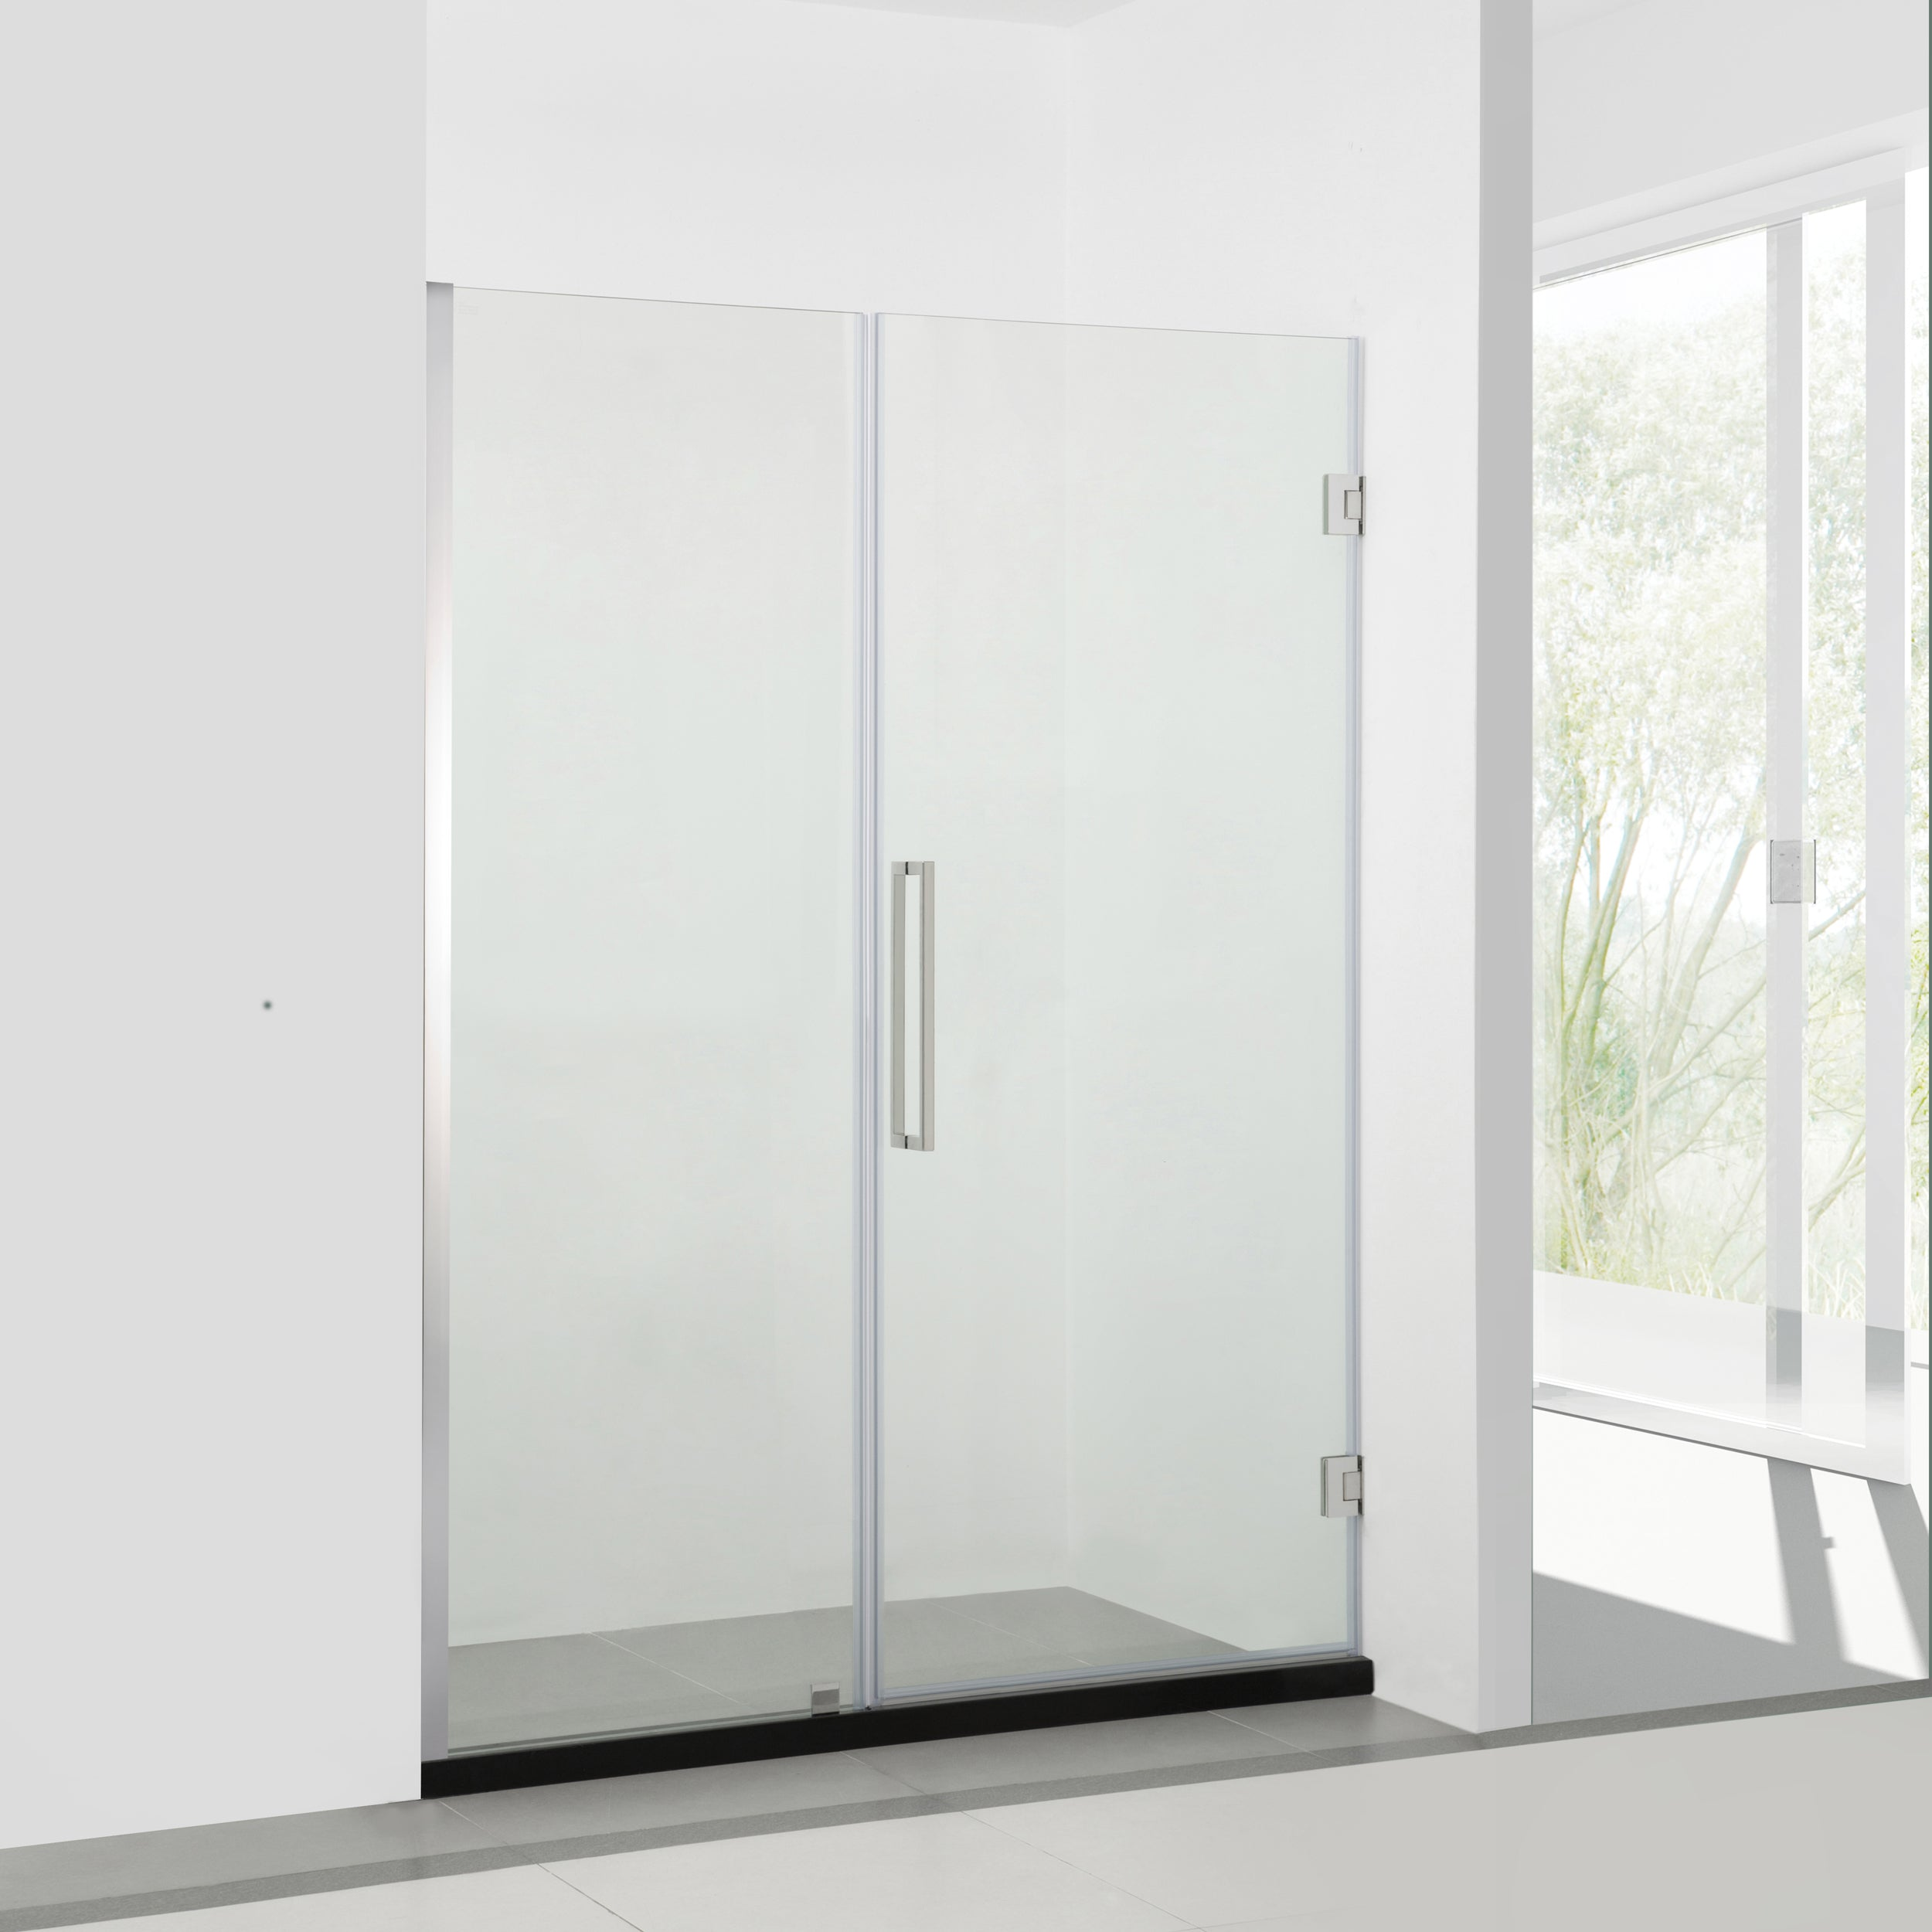 BAI 0926 Frameless Glass Shower Enclosure With Fixed Panel and Swing / French Door - 48 & Glass Shower Enclosures u2013 MegaBAI